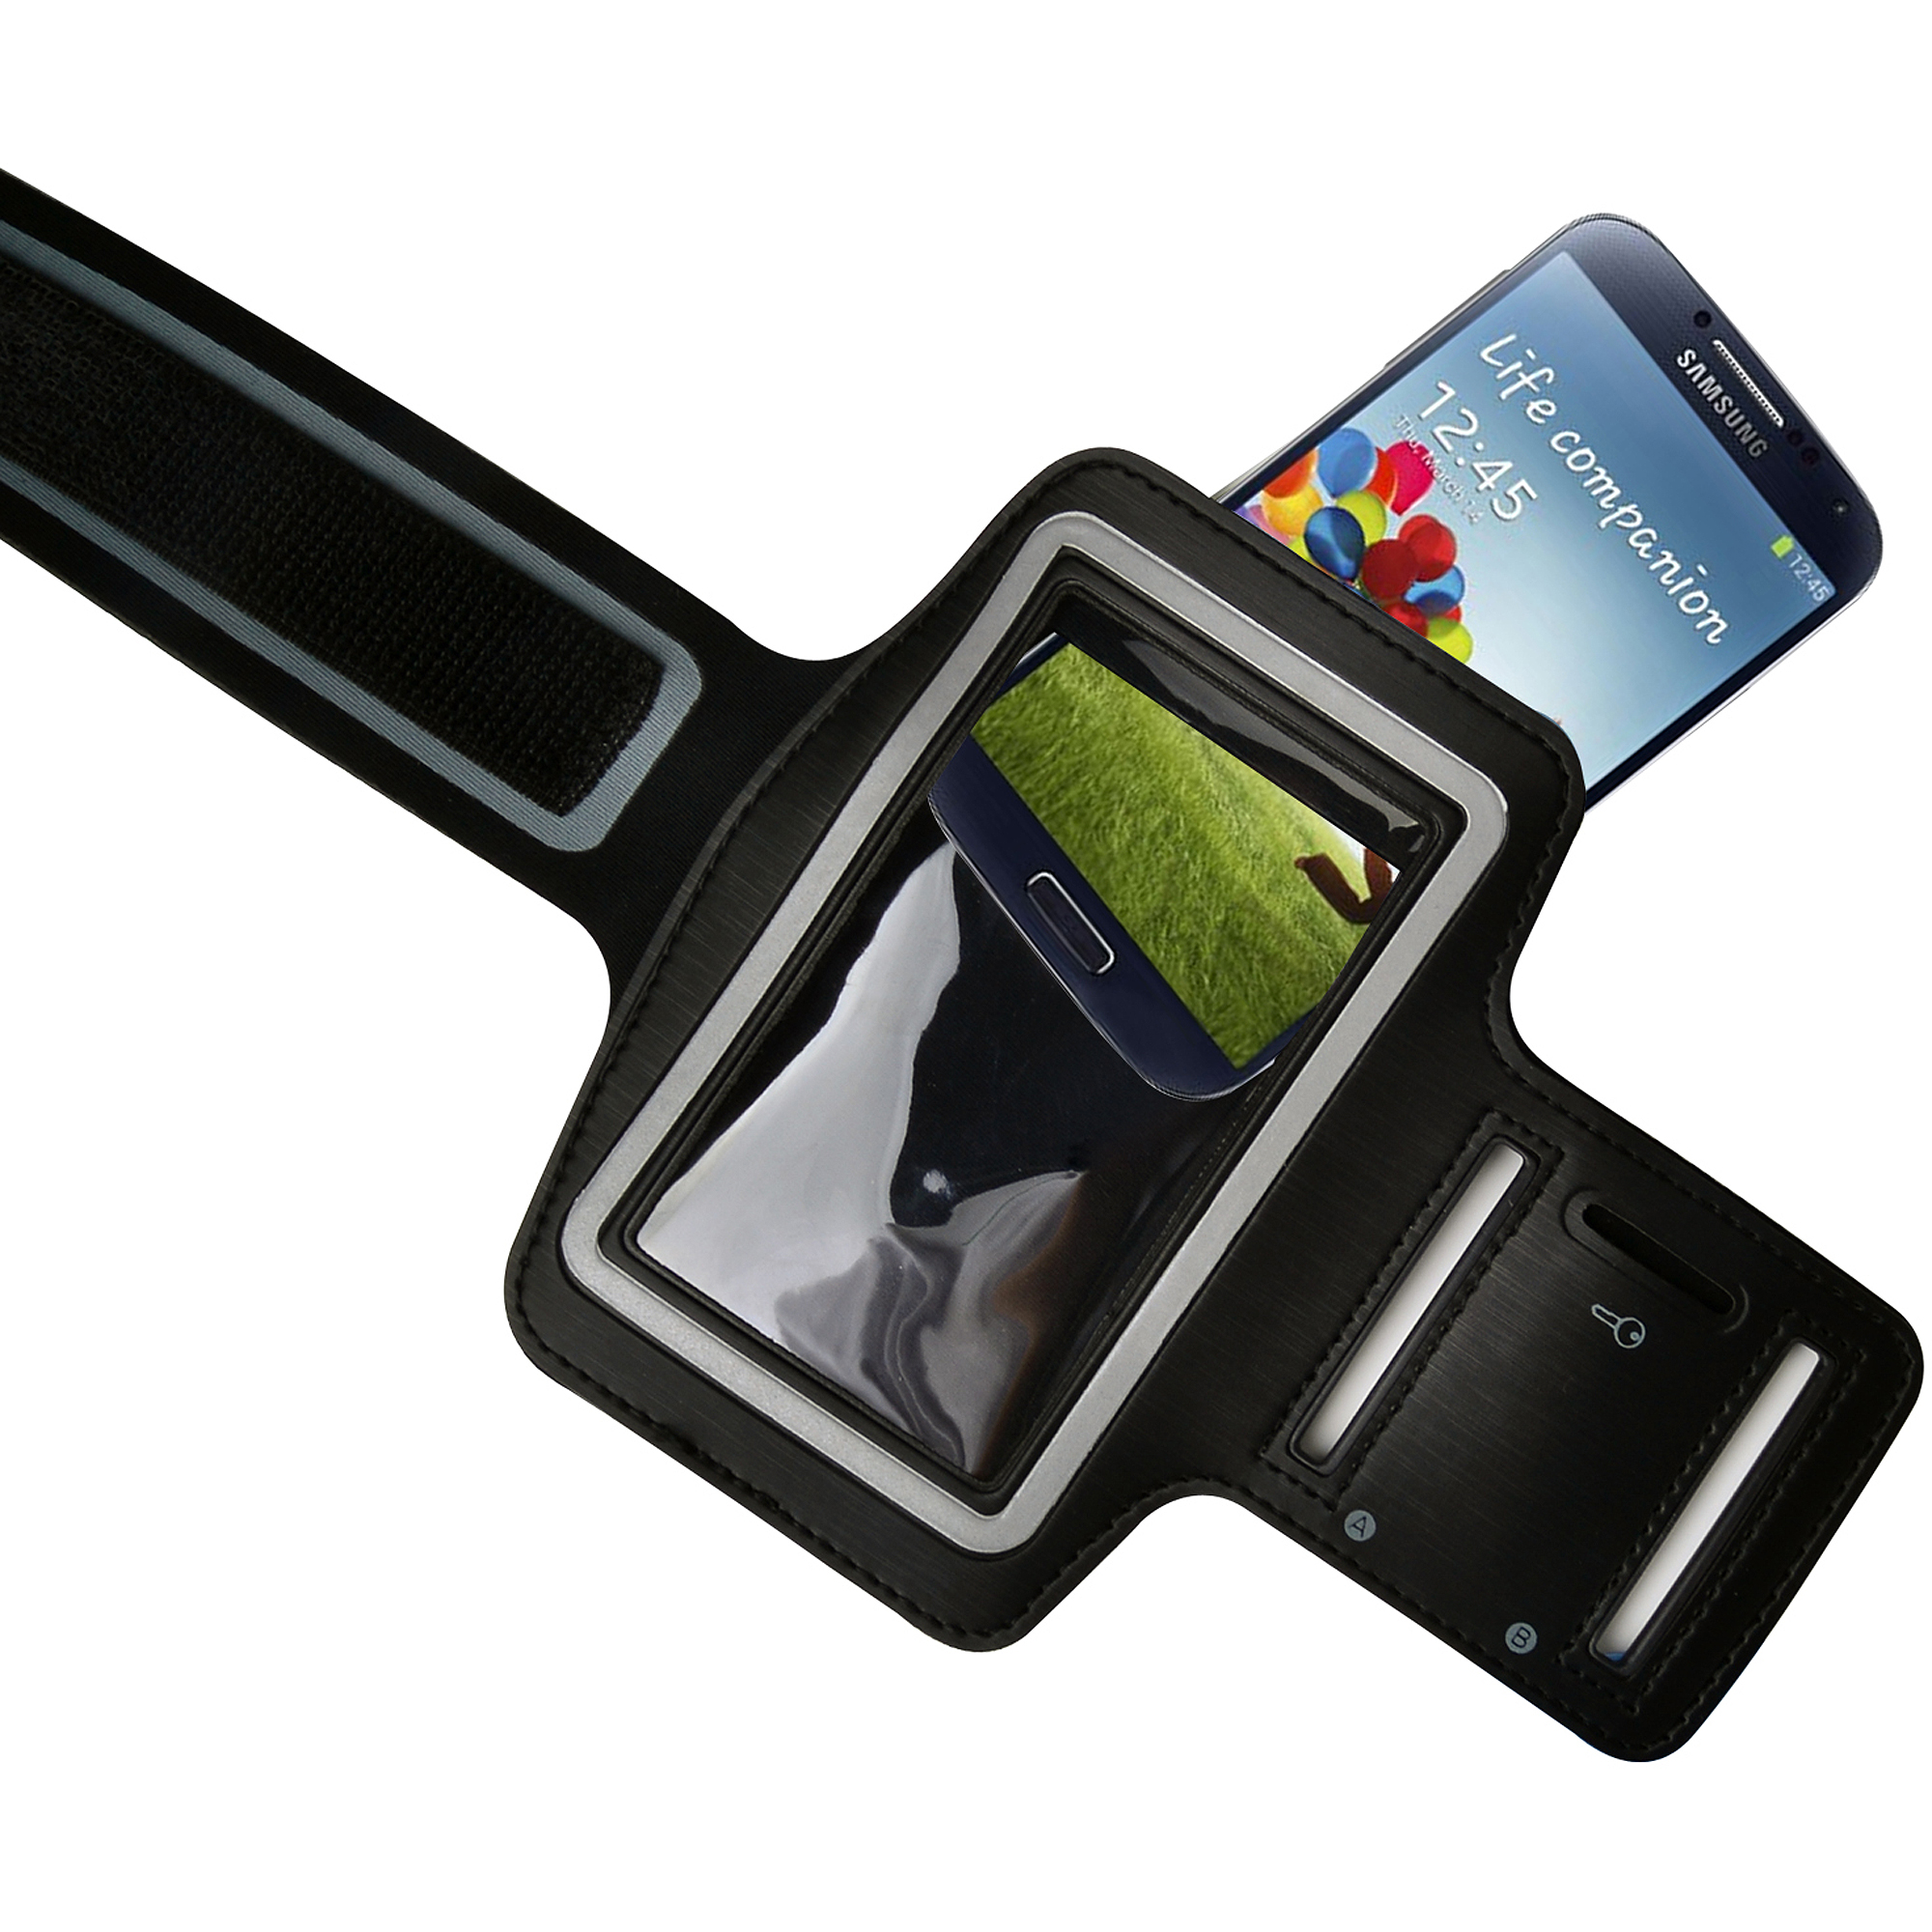 Avantree KSAM-001 Sports Armband for Smartphones, Black